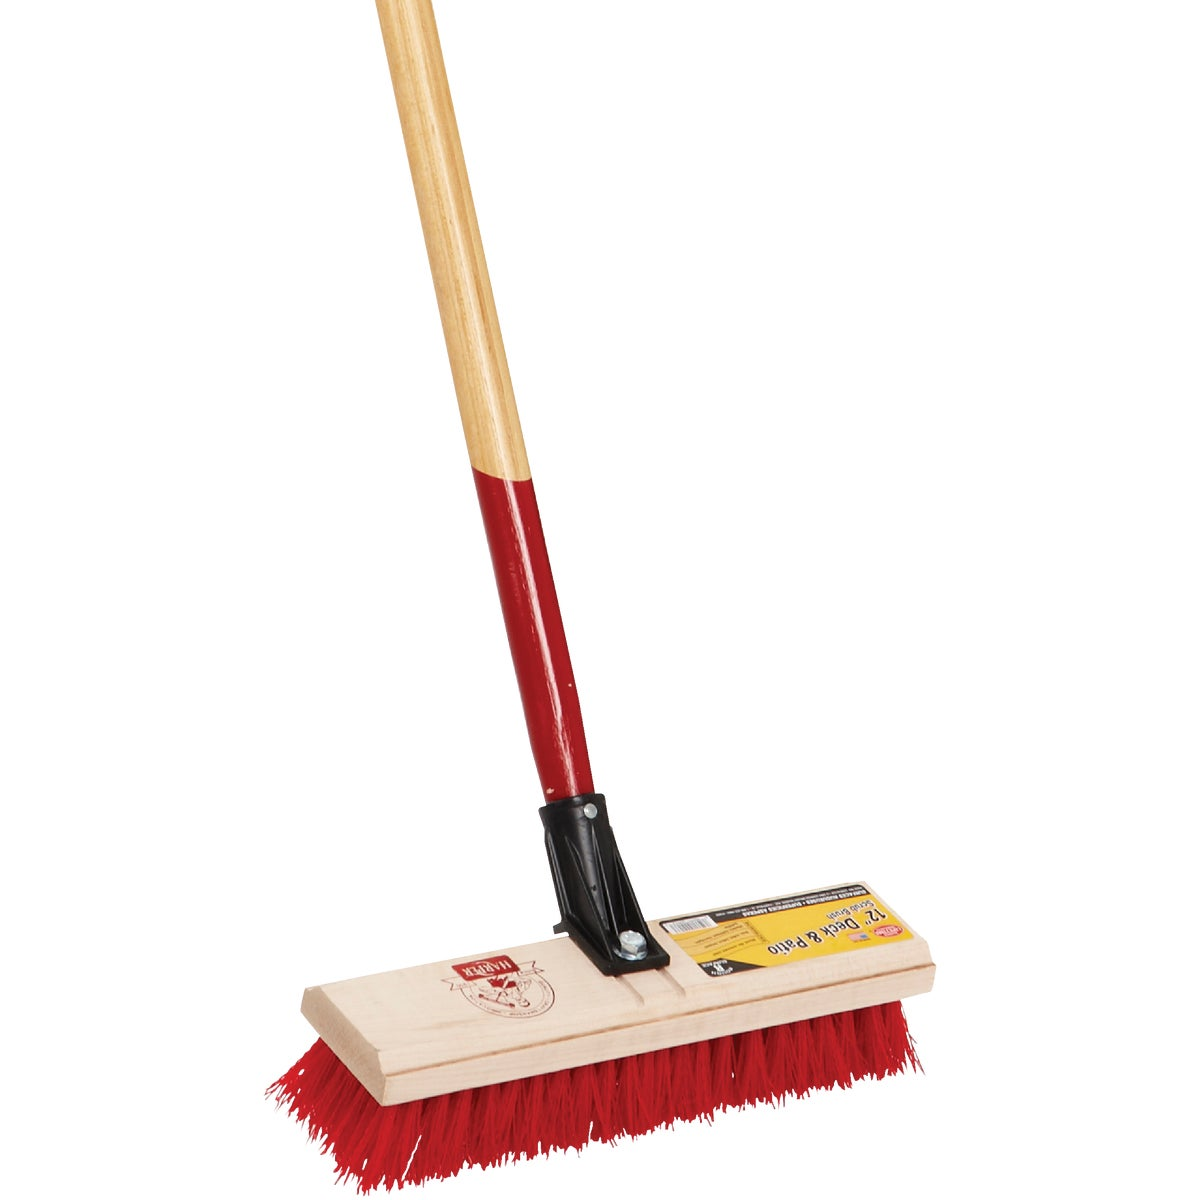 "12"" DECK BRUSH - 53561912A by Harper Brush Incom"